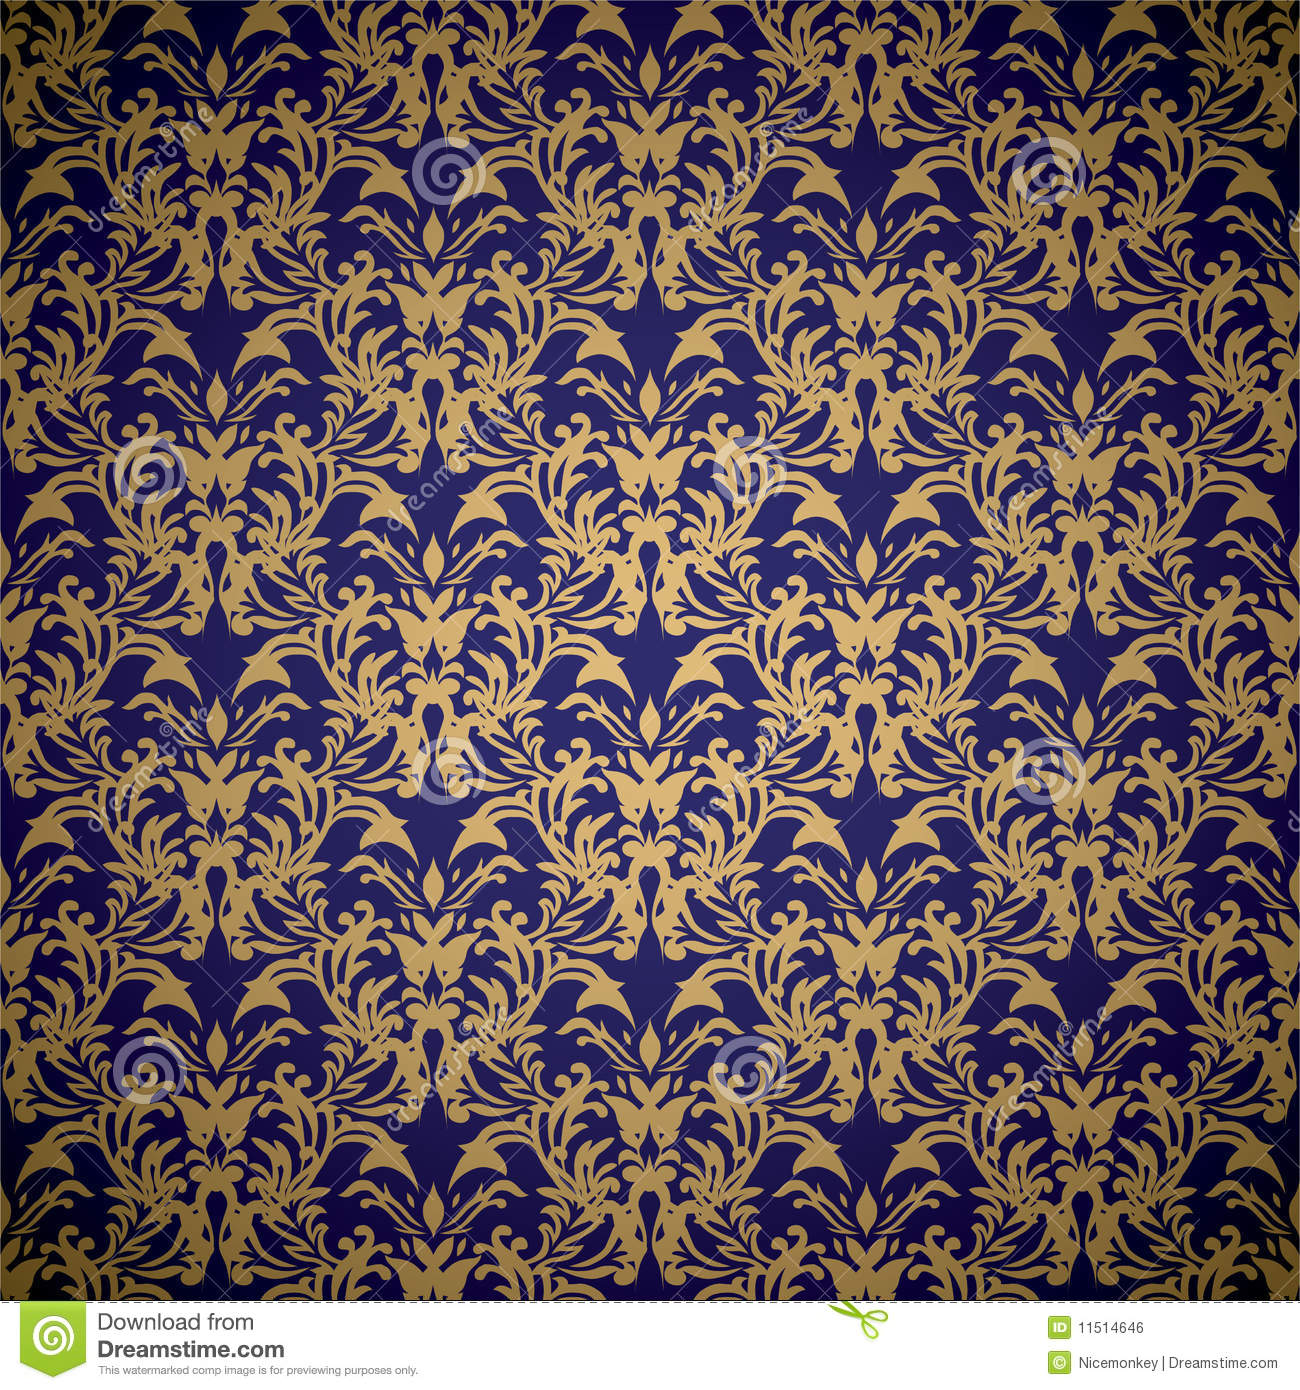 Royal design wallpaper the wallpaper royal design wallpaperindian design for exotic decorating royal design studio paisley wall stencils amipublicfo Image collections